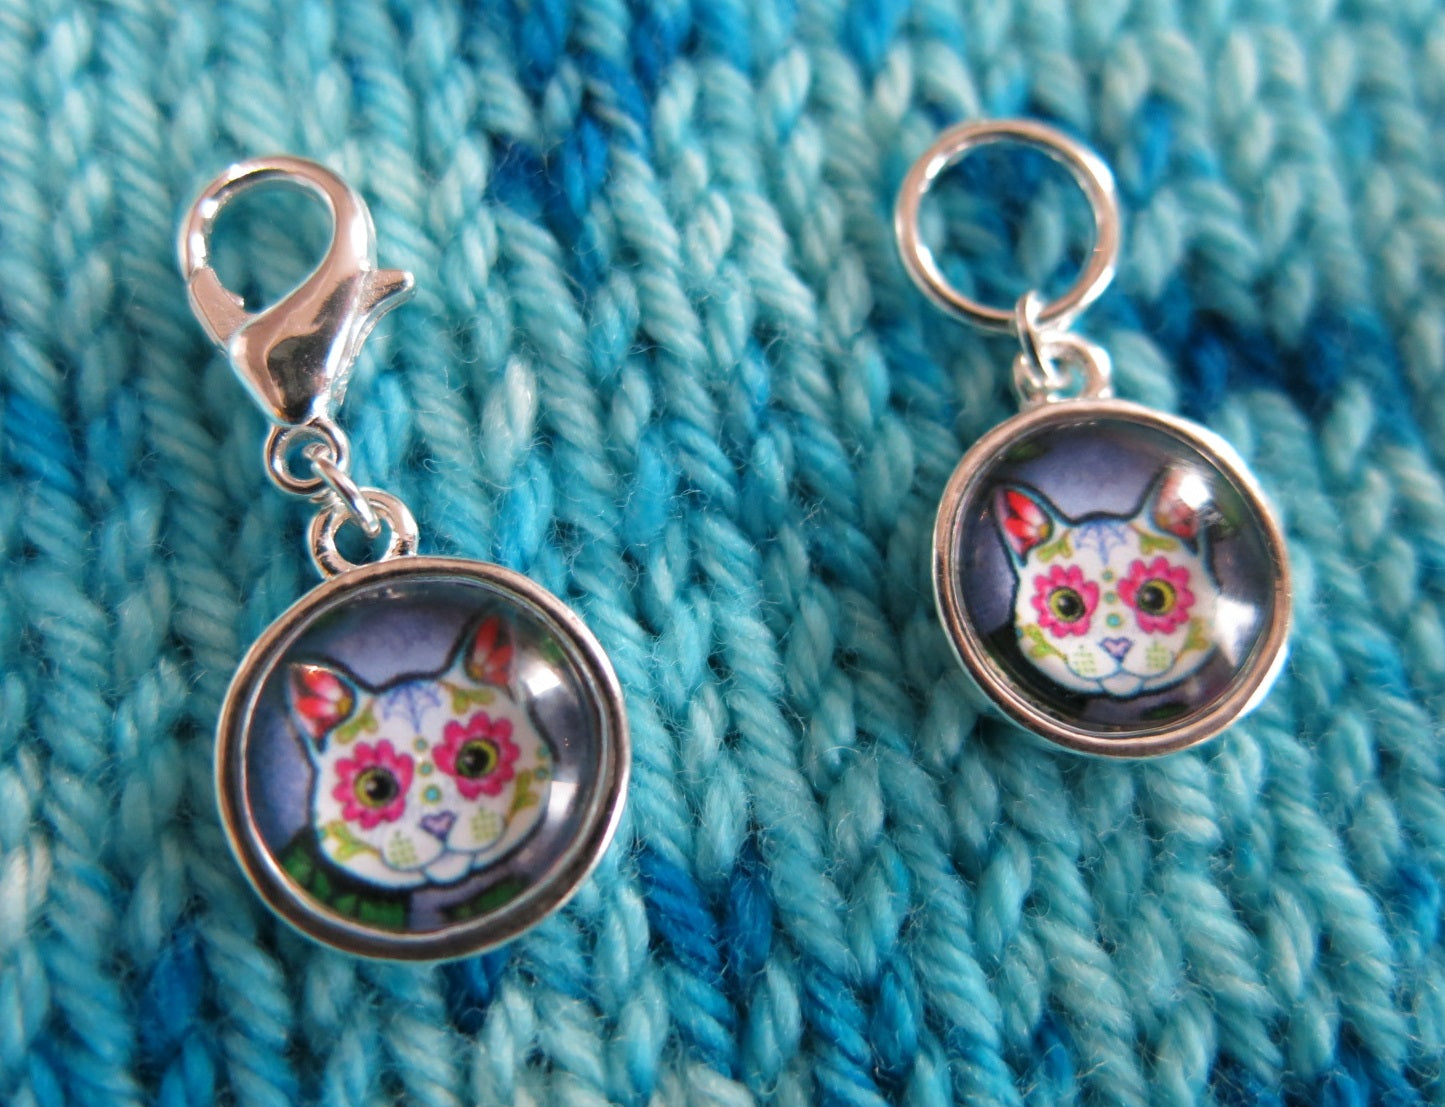 sugar skull cat charm on a clasp or snagless ring for bags, zippers and knitting